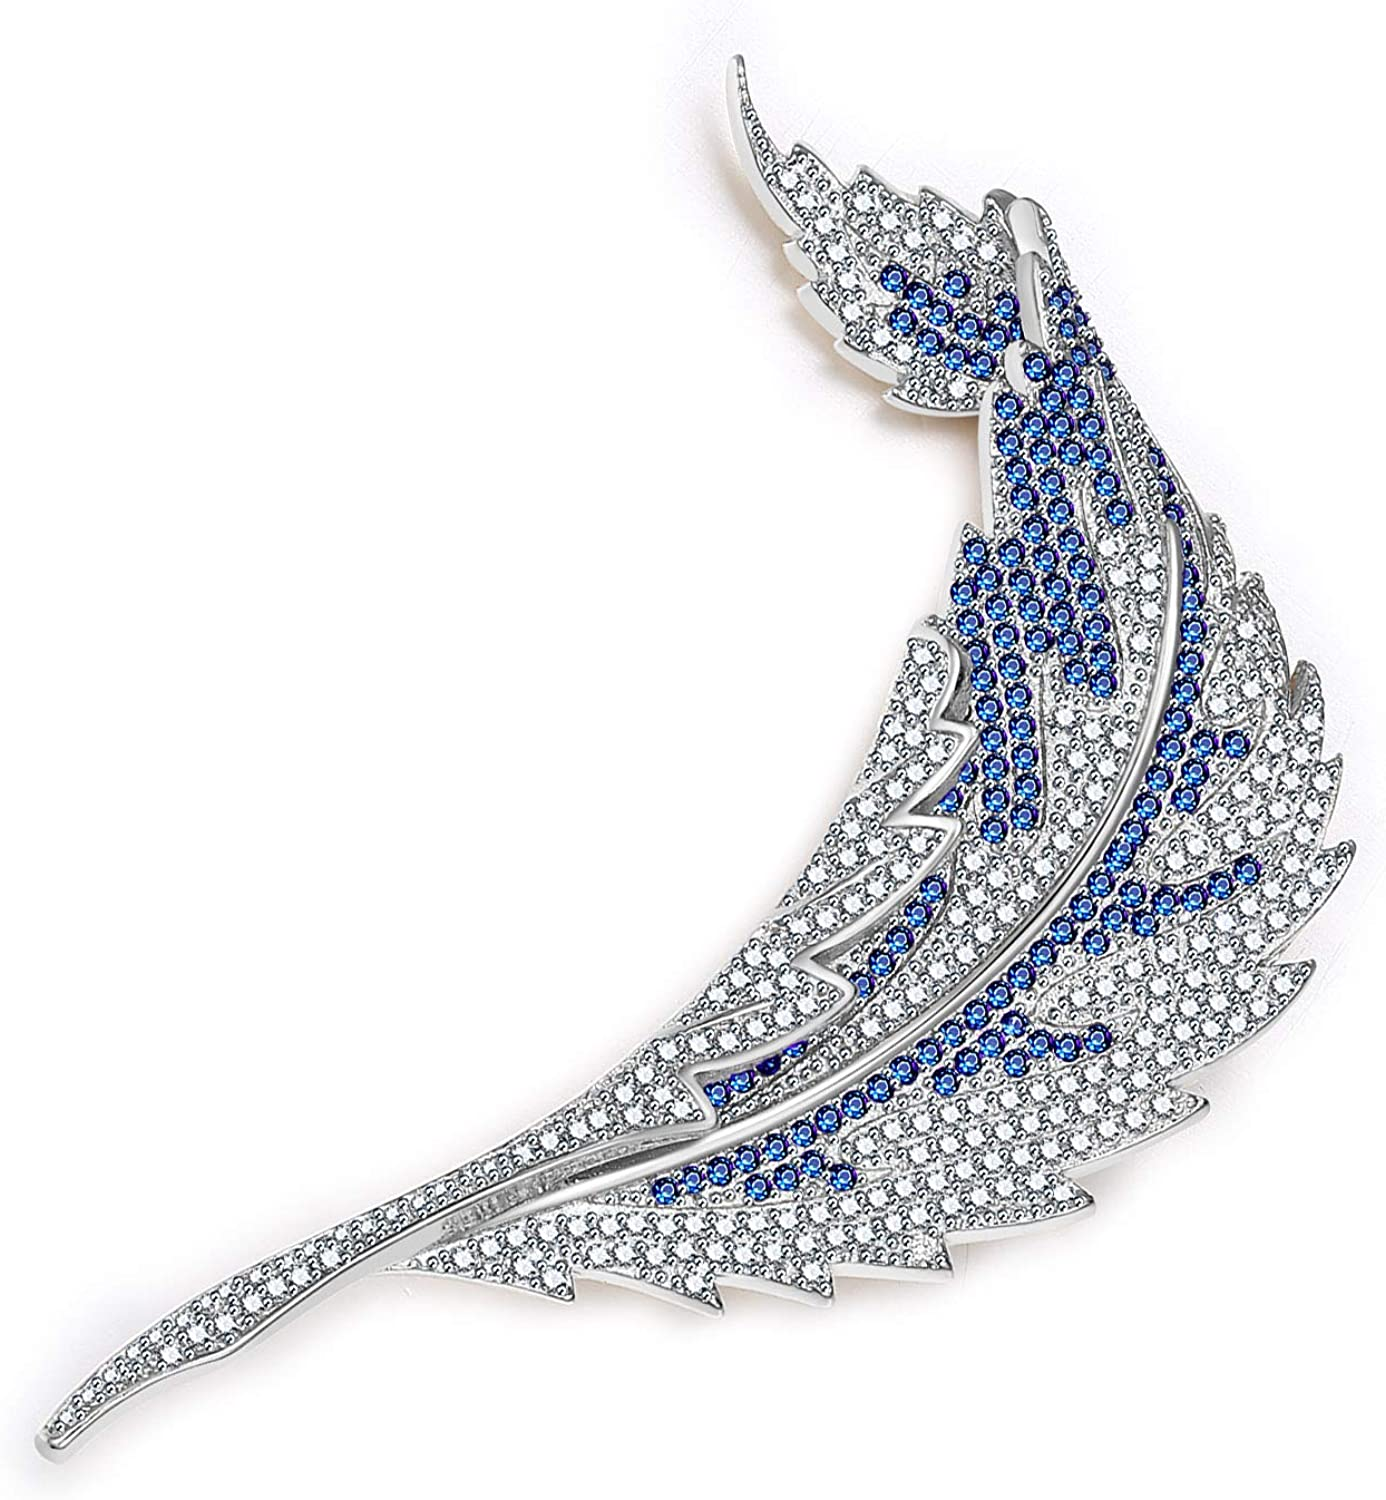 Timoey Crystal Zircon Brooch Pins for Women and Girl Party Flower Tree Leaf Brooches